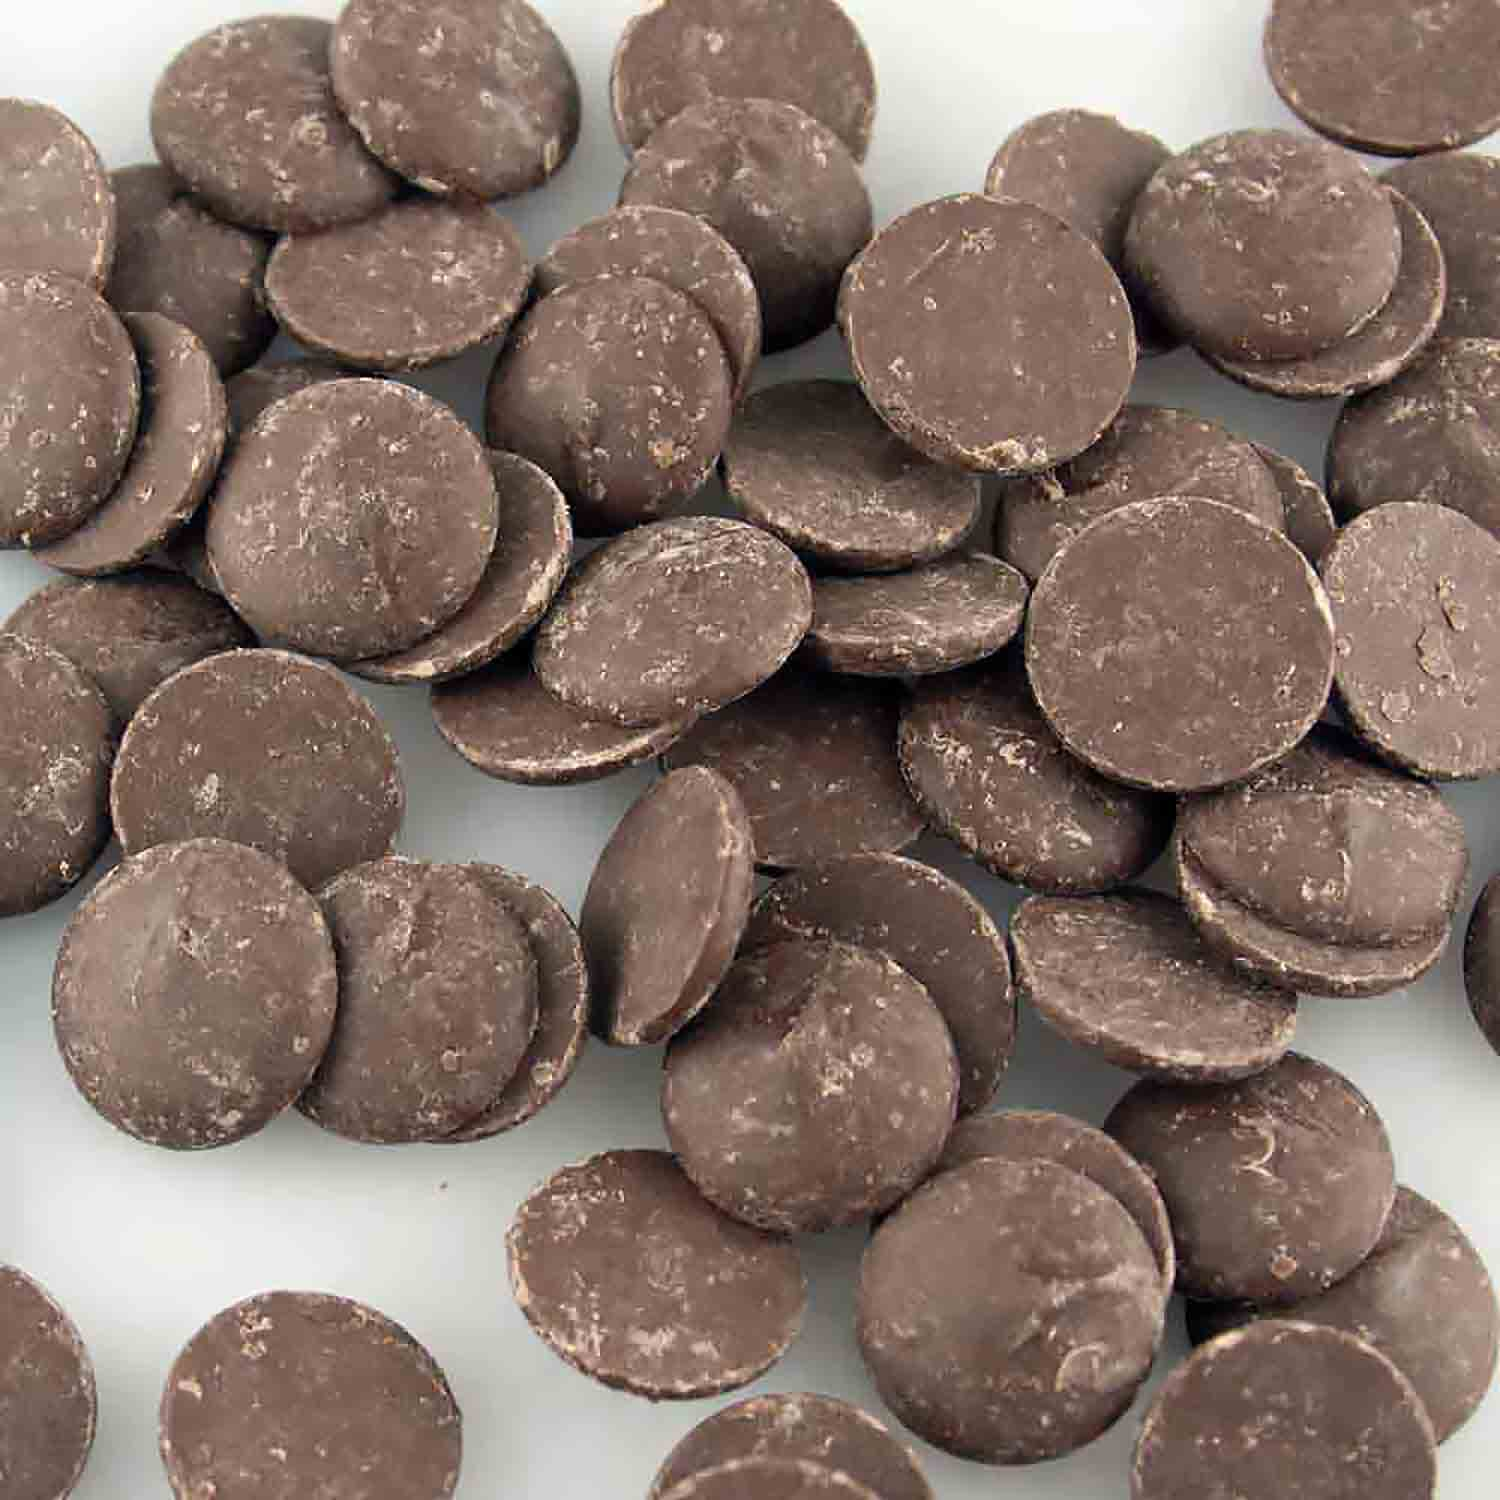 Peter's Cambra Bittersweet 72% Real Chocolate Wafers